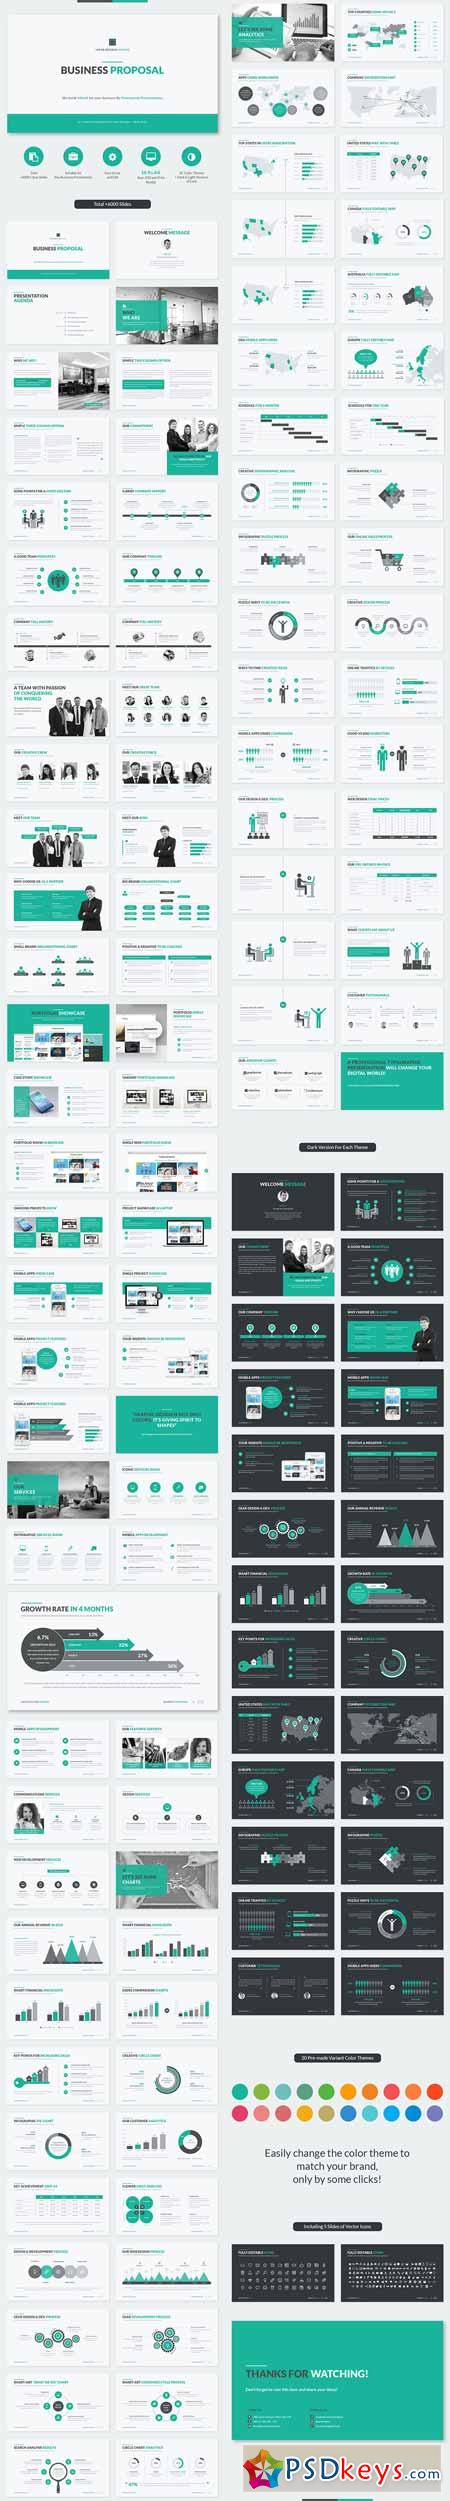 Business proposal powerpoint template 11833931 free download business proposal powerpoint template 11833931 wajeb Images